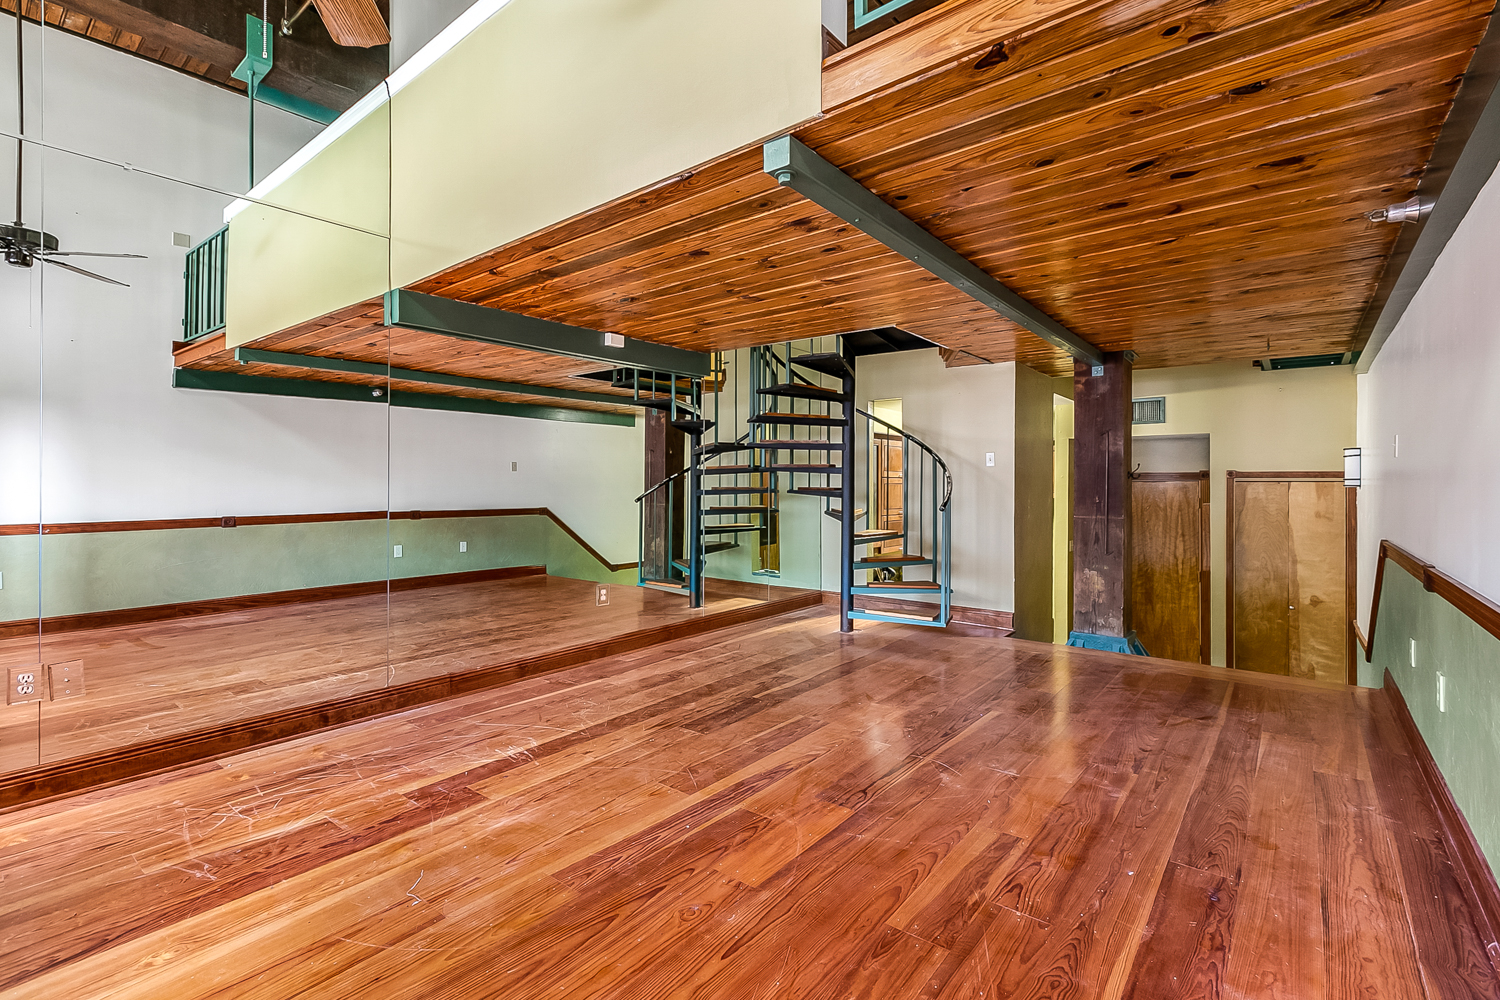 Fibre Mill Condo $250K in New Orleans Warehouse District